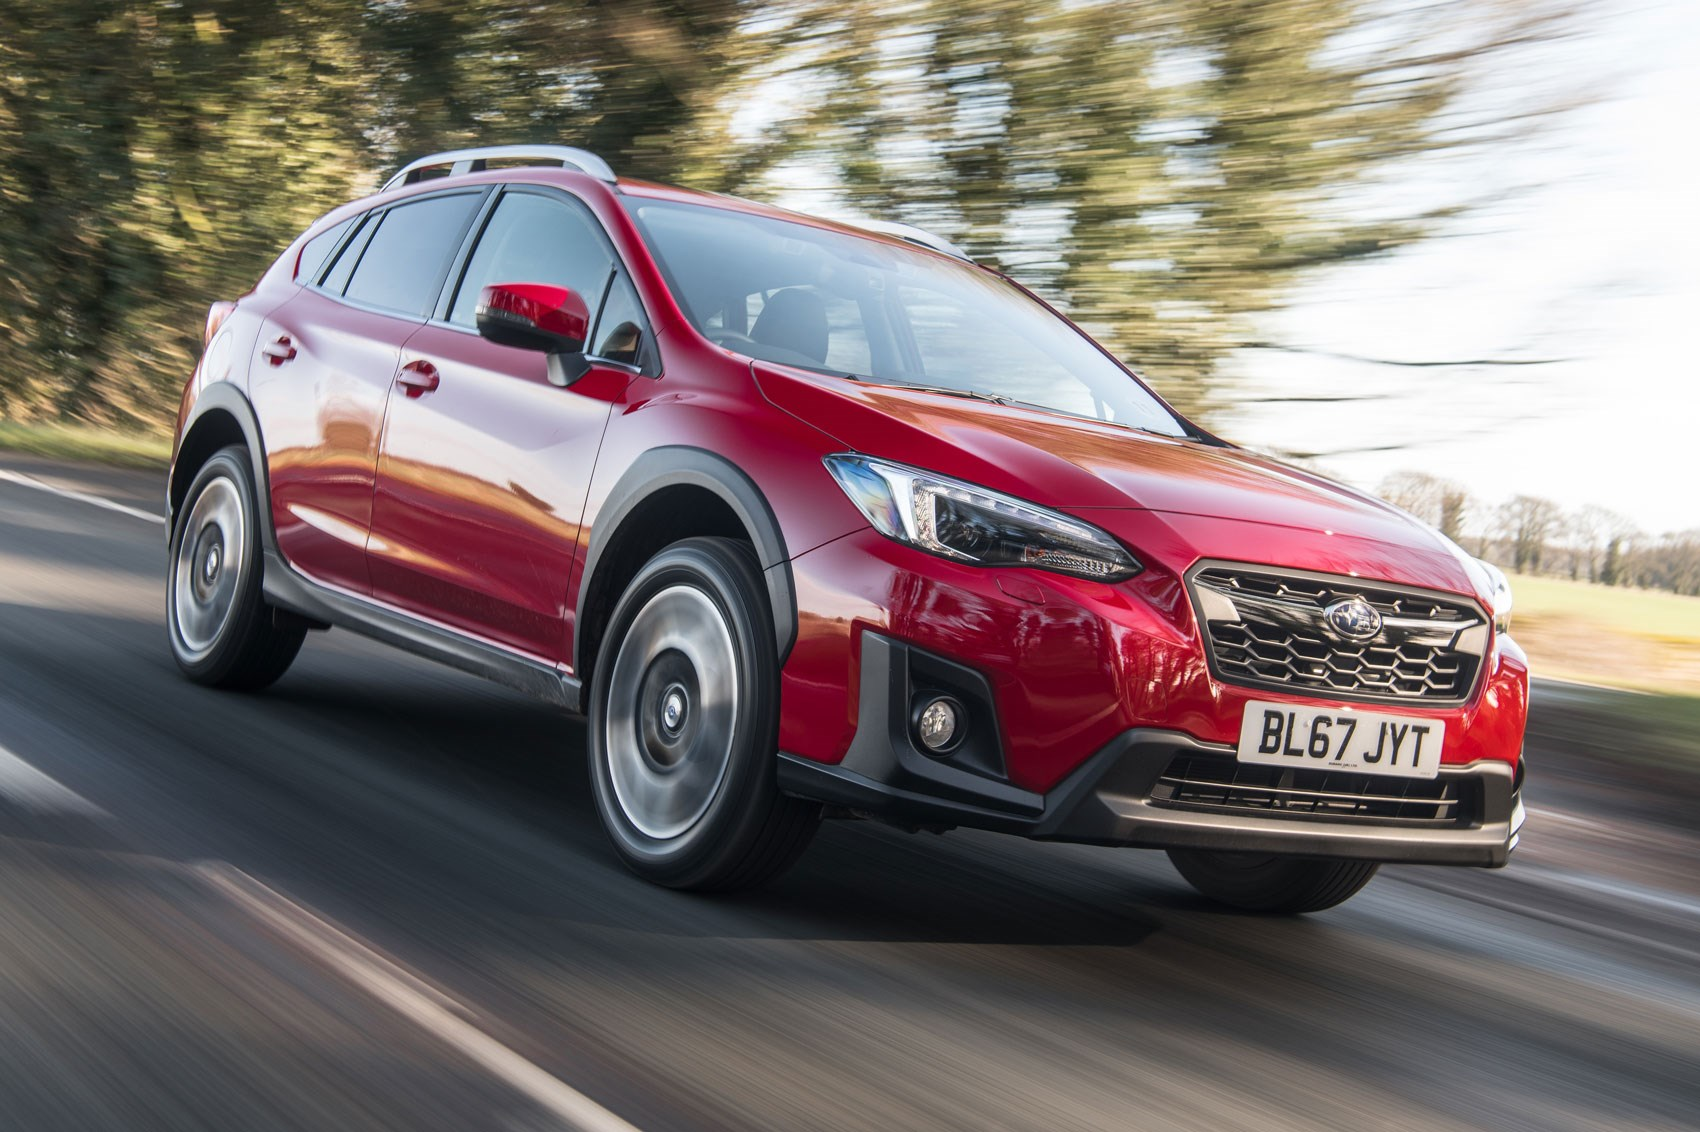 Subaru Xv 2018 Review A Flawed But Likeable Suv